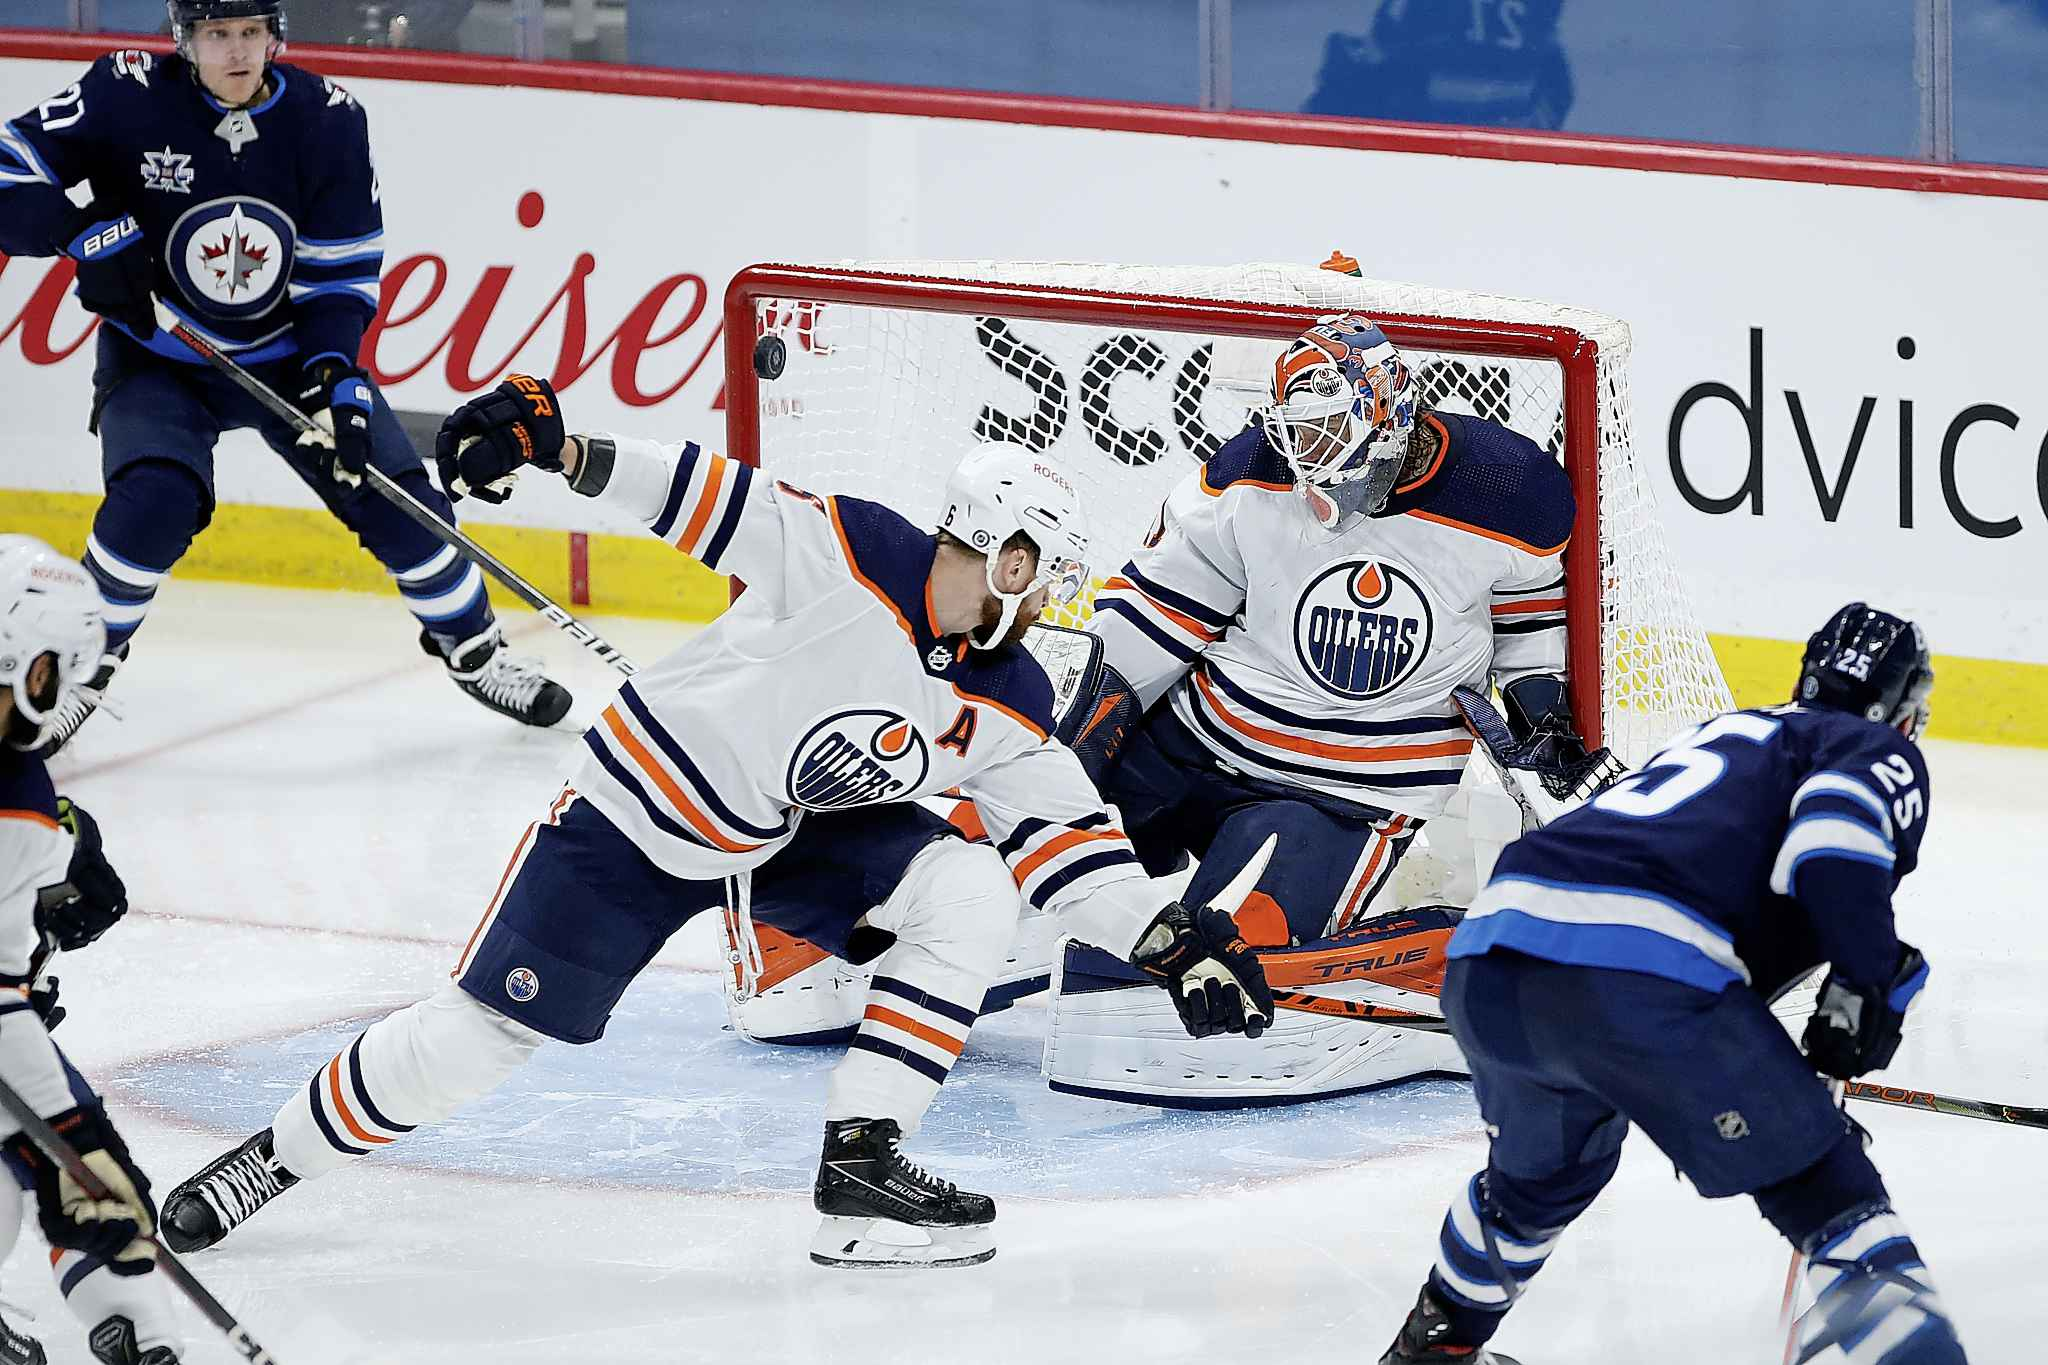 Edmonton Oilers goaltender Mike Smith (41) makes the save against Winnipeg Jets' Paul Stastny (25) as Adam Larsson (6) defends during the second period. (John Woods / The Canadian Press)